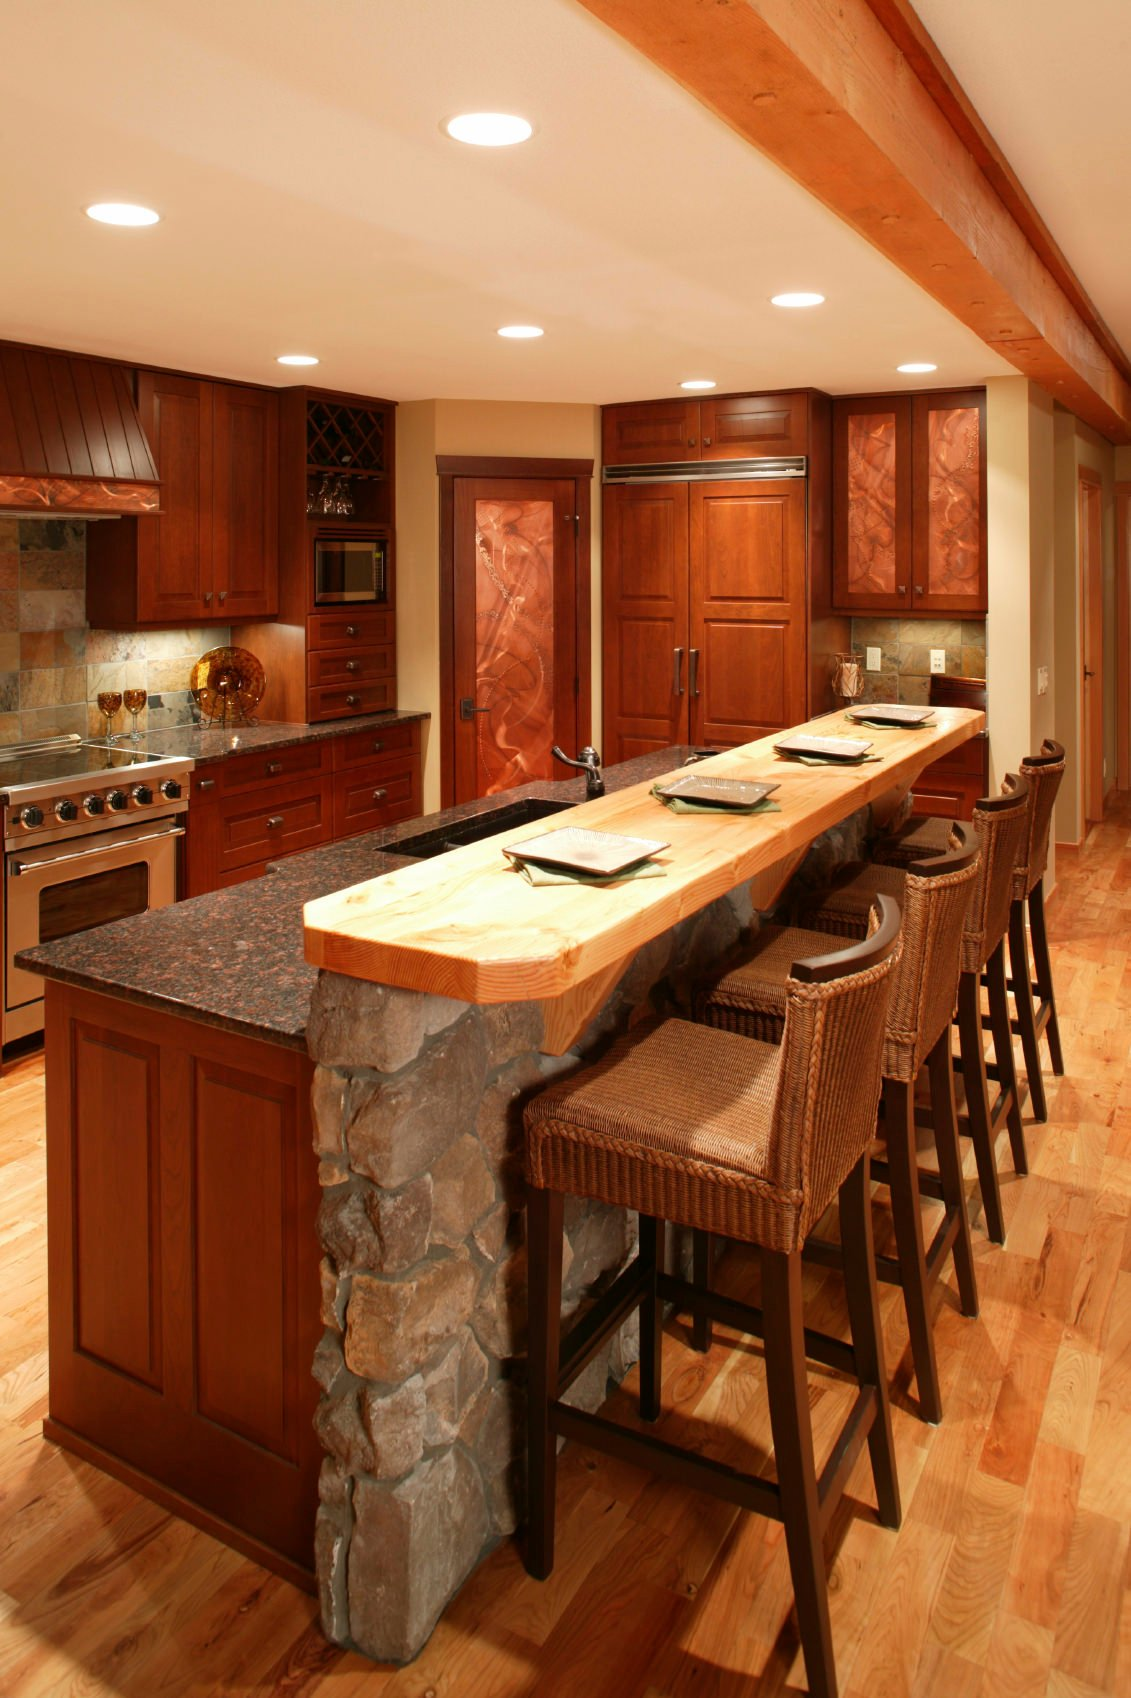 Rustic kitchen with red-toned wood cabinetry and a two-tiered bar-style kitchen with a stone base for the upper tier with wood surface.